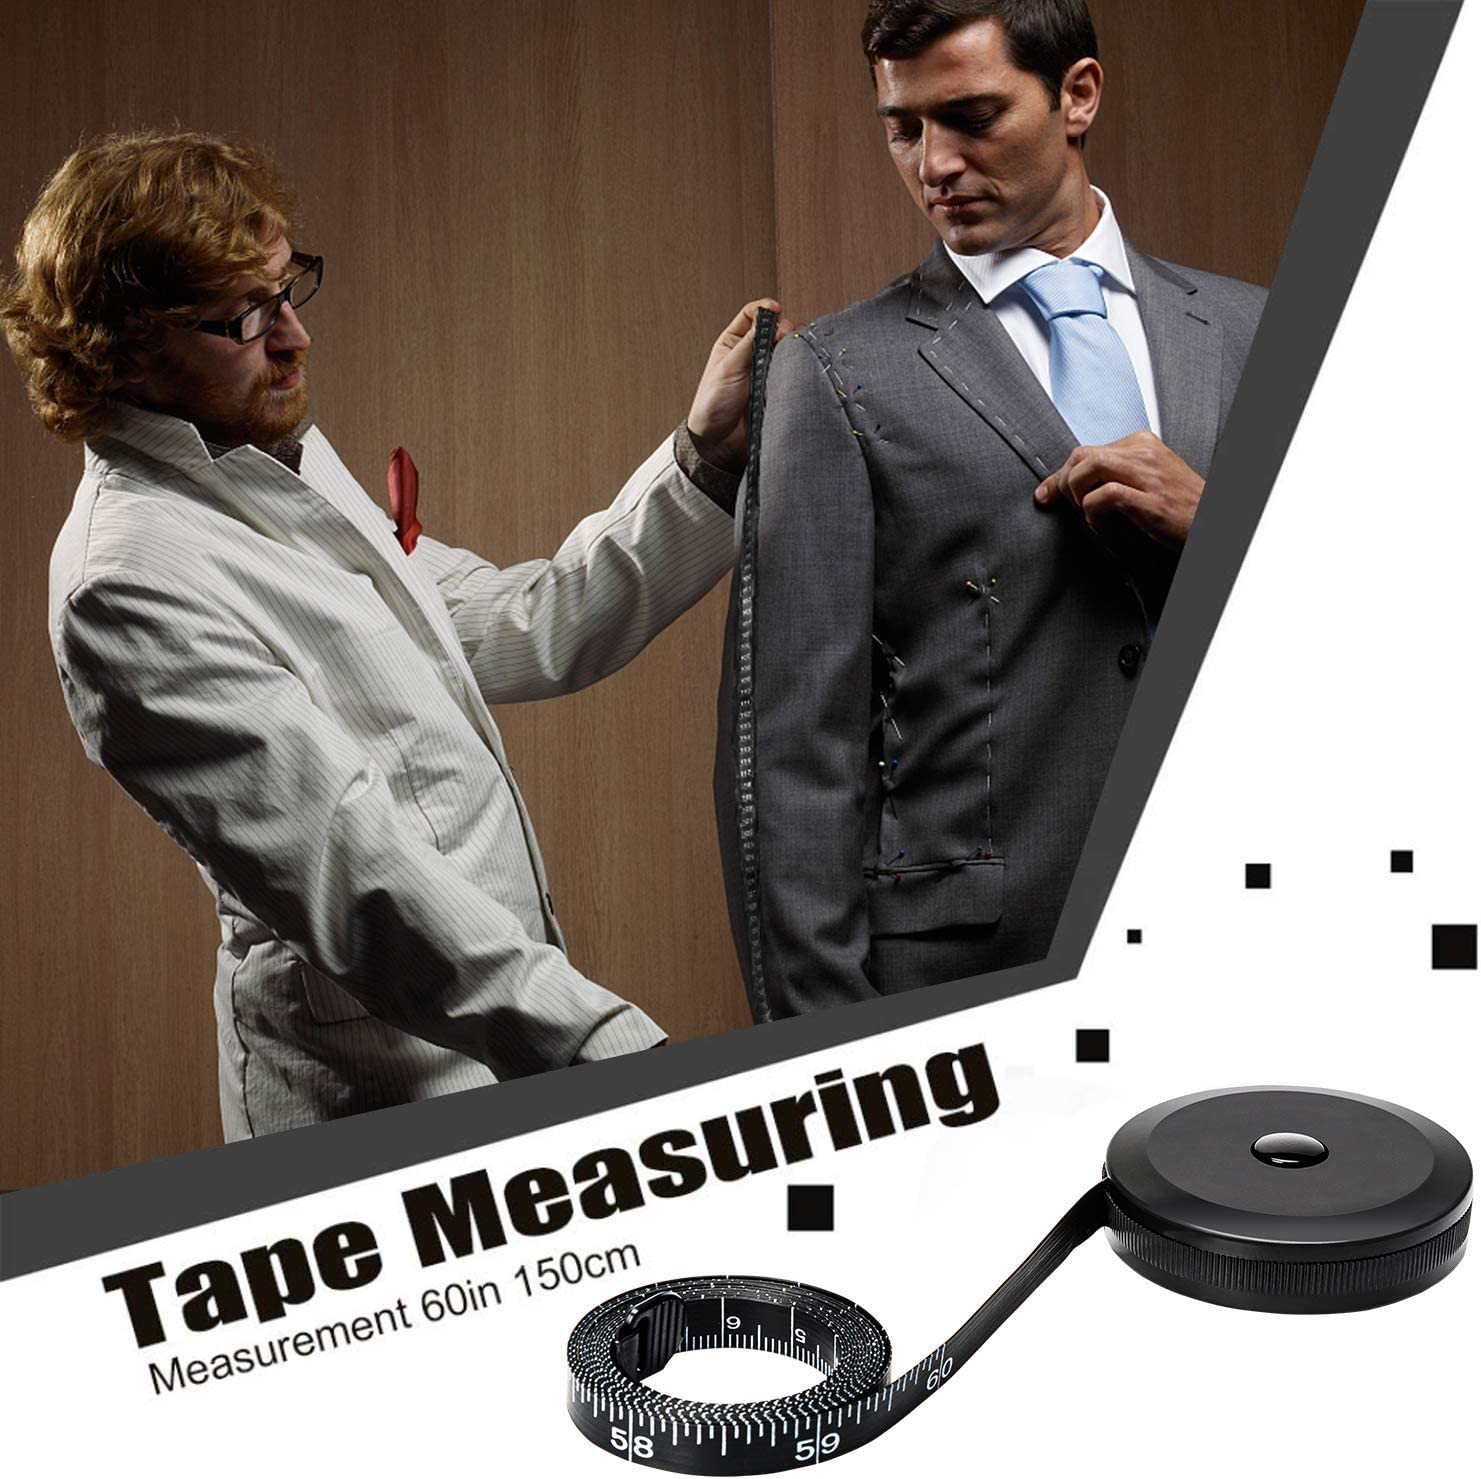 1Pcs Tape Measure for Body Cloth Ruler Measuring Tape for Sewing Tailor Fabric Measurements Tape Retractable Dual Sided Black 60-inch